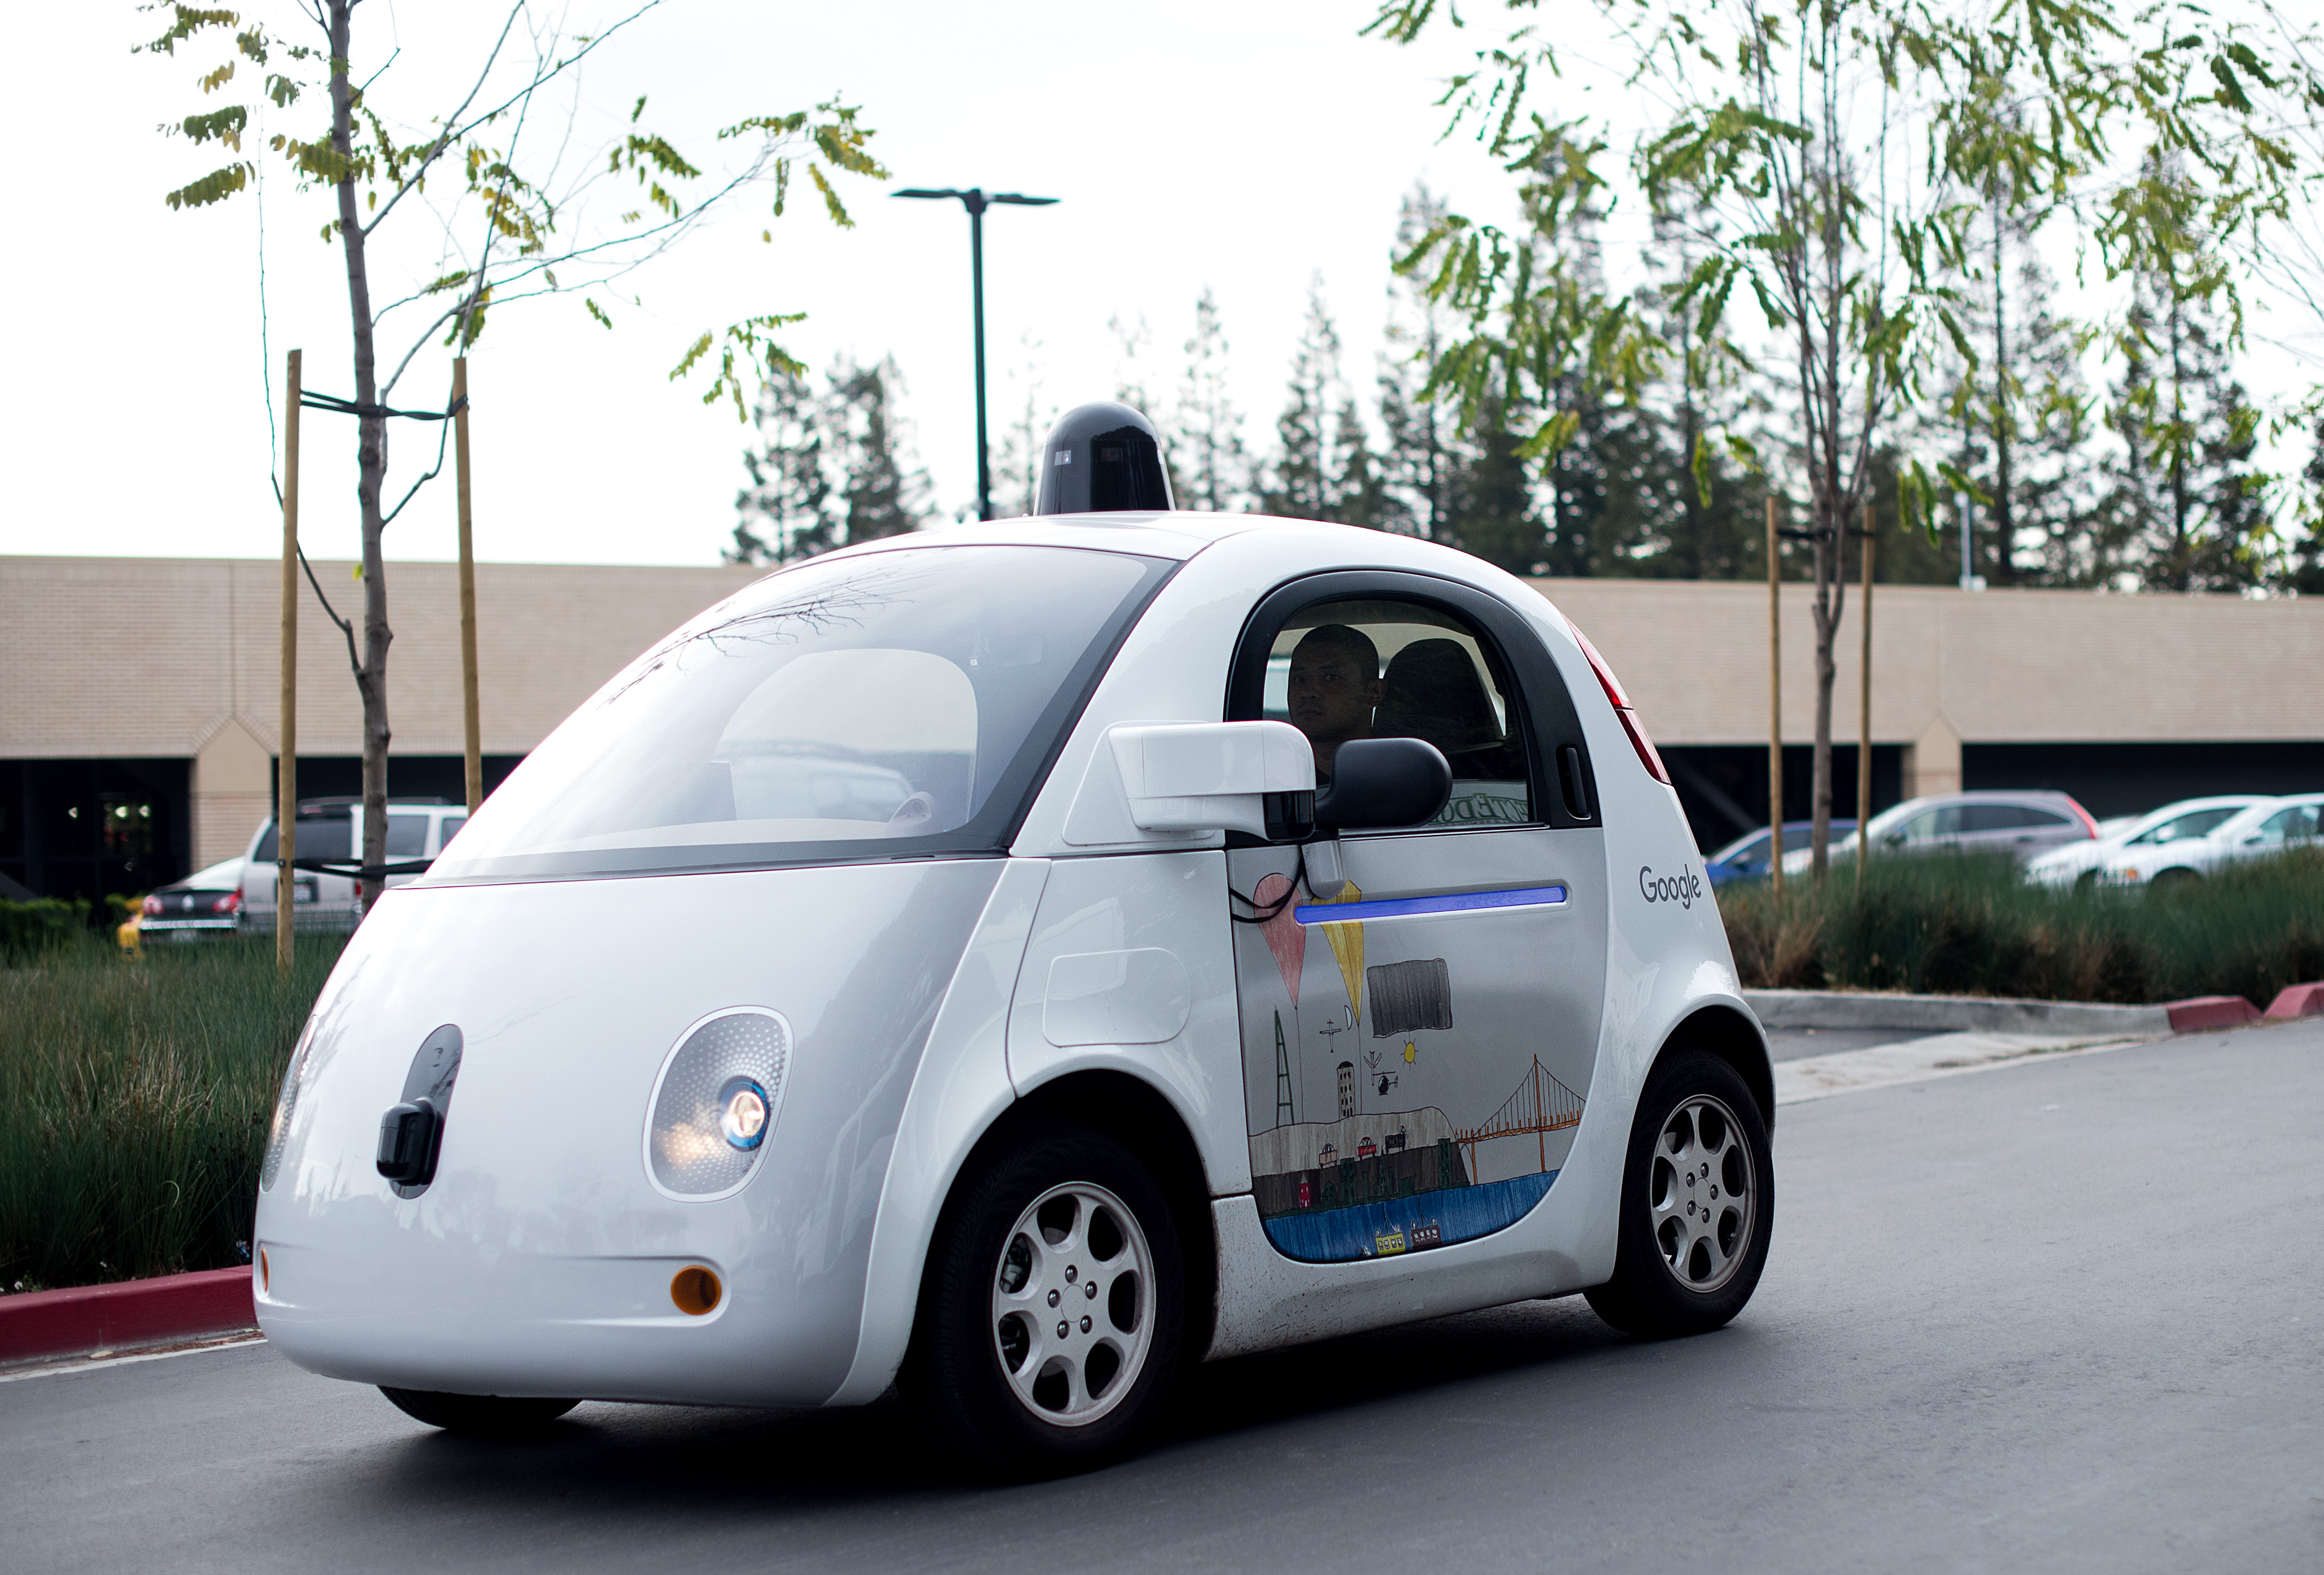 A self-driving car traverses a parking lot at Google's headquarters in Mountain View, California on January 8, 2016.